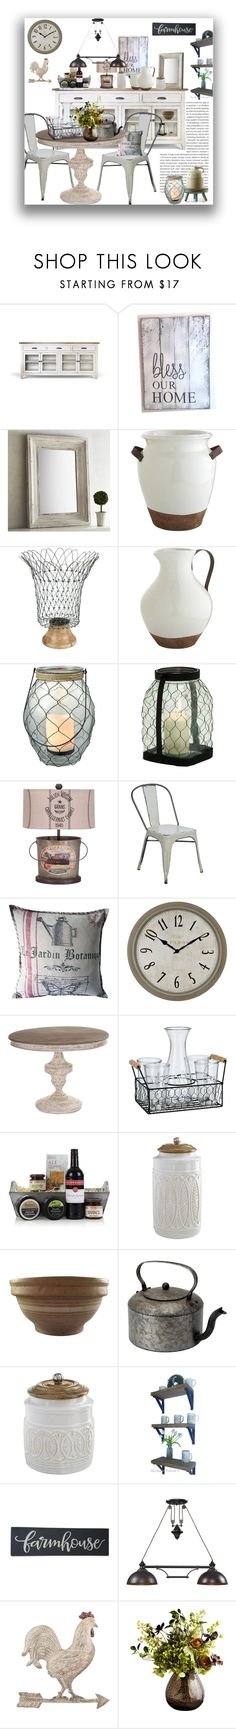 """Fixer Upper"" by marionmeyer ❤ liked on Polyvore featuring interior, interiors, interior design, home, home decor, interior decorating, Pier 1 Imports, Gerson, San Miguel and ELK Lighting"